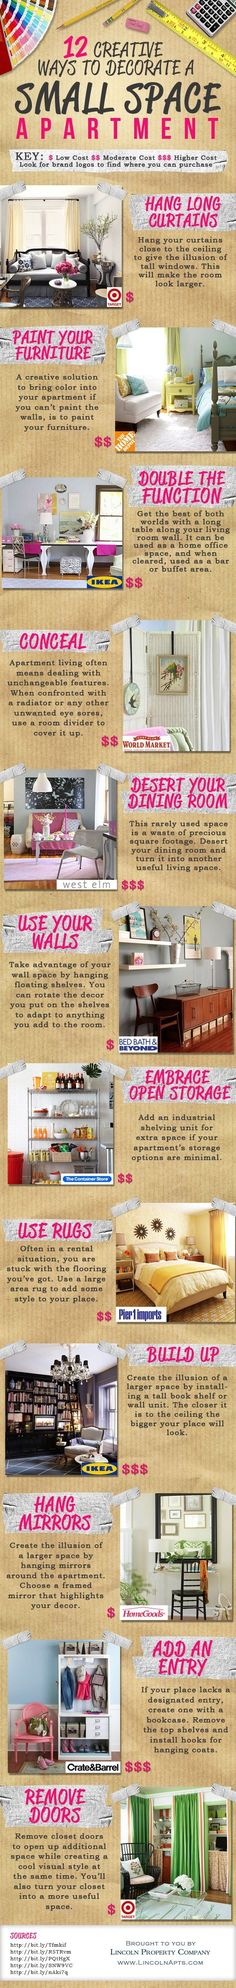 Small space tips. Build up. Paint furniture. Use carpets. Hang mirrors. Use your walls. Etc.